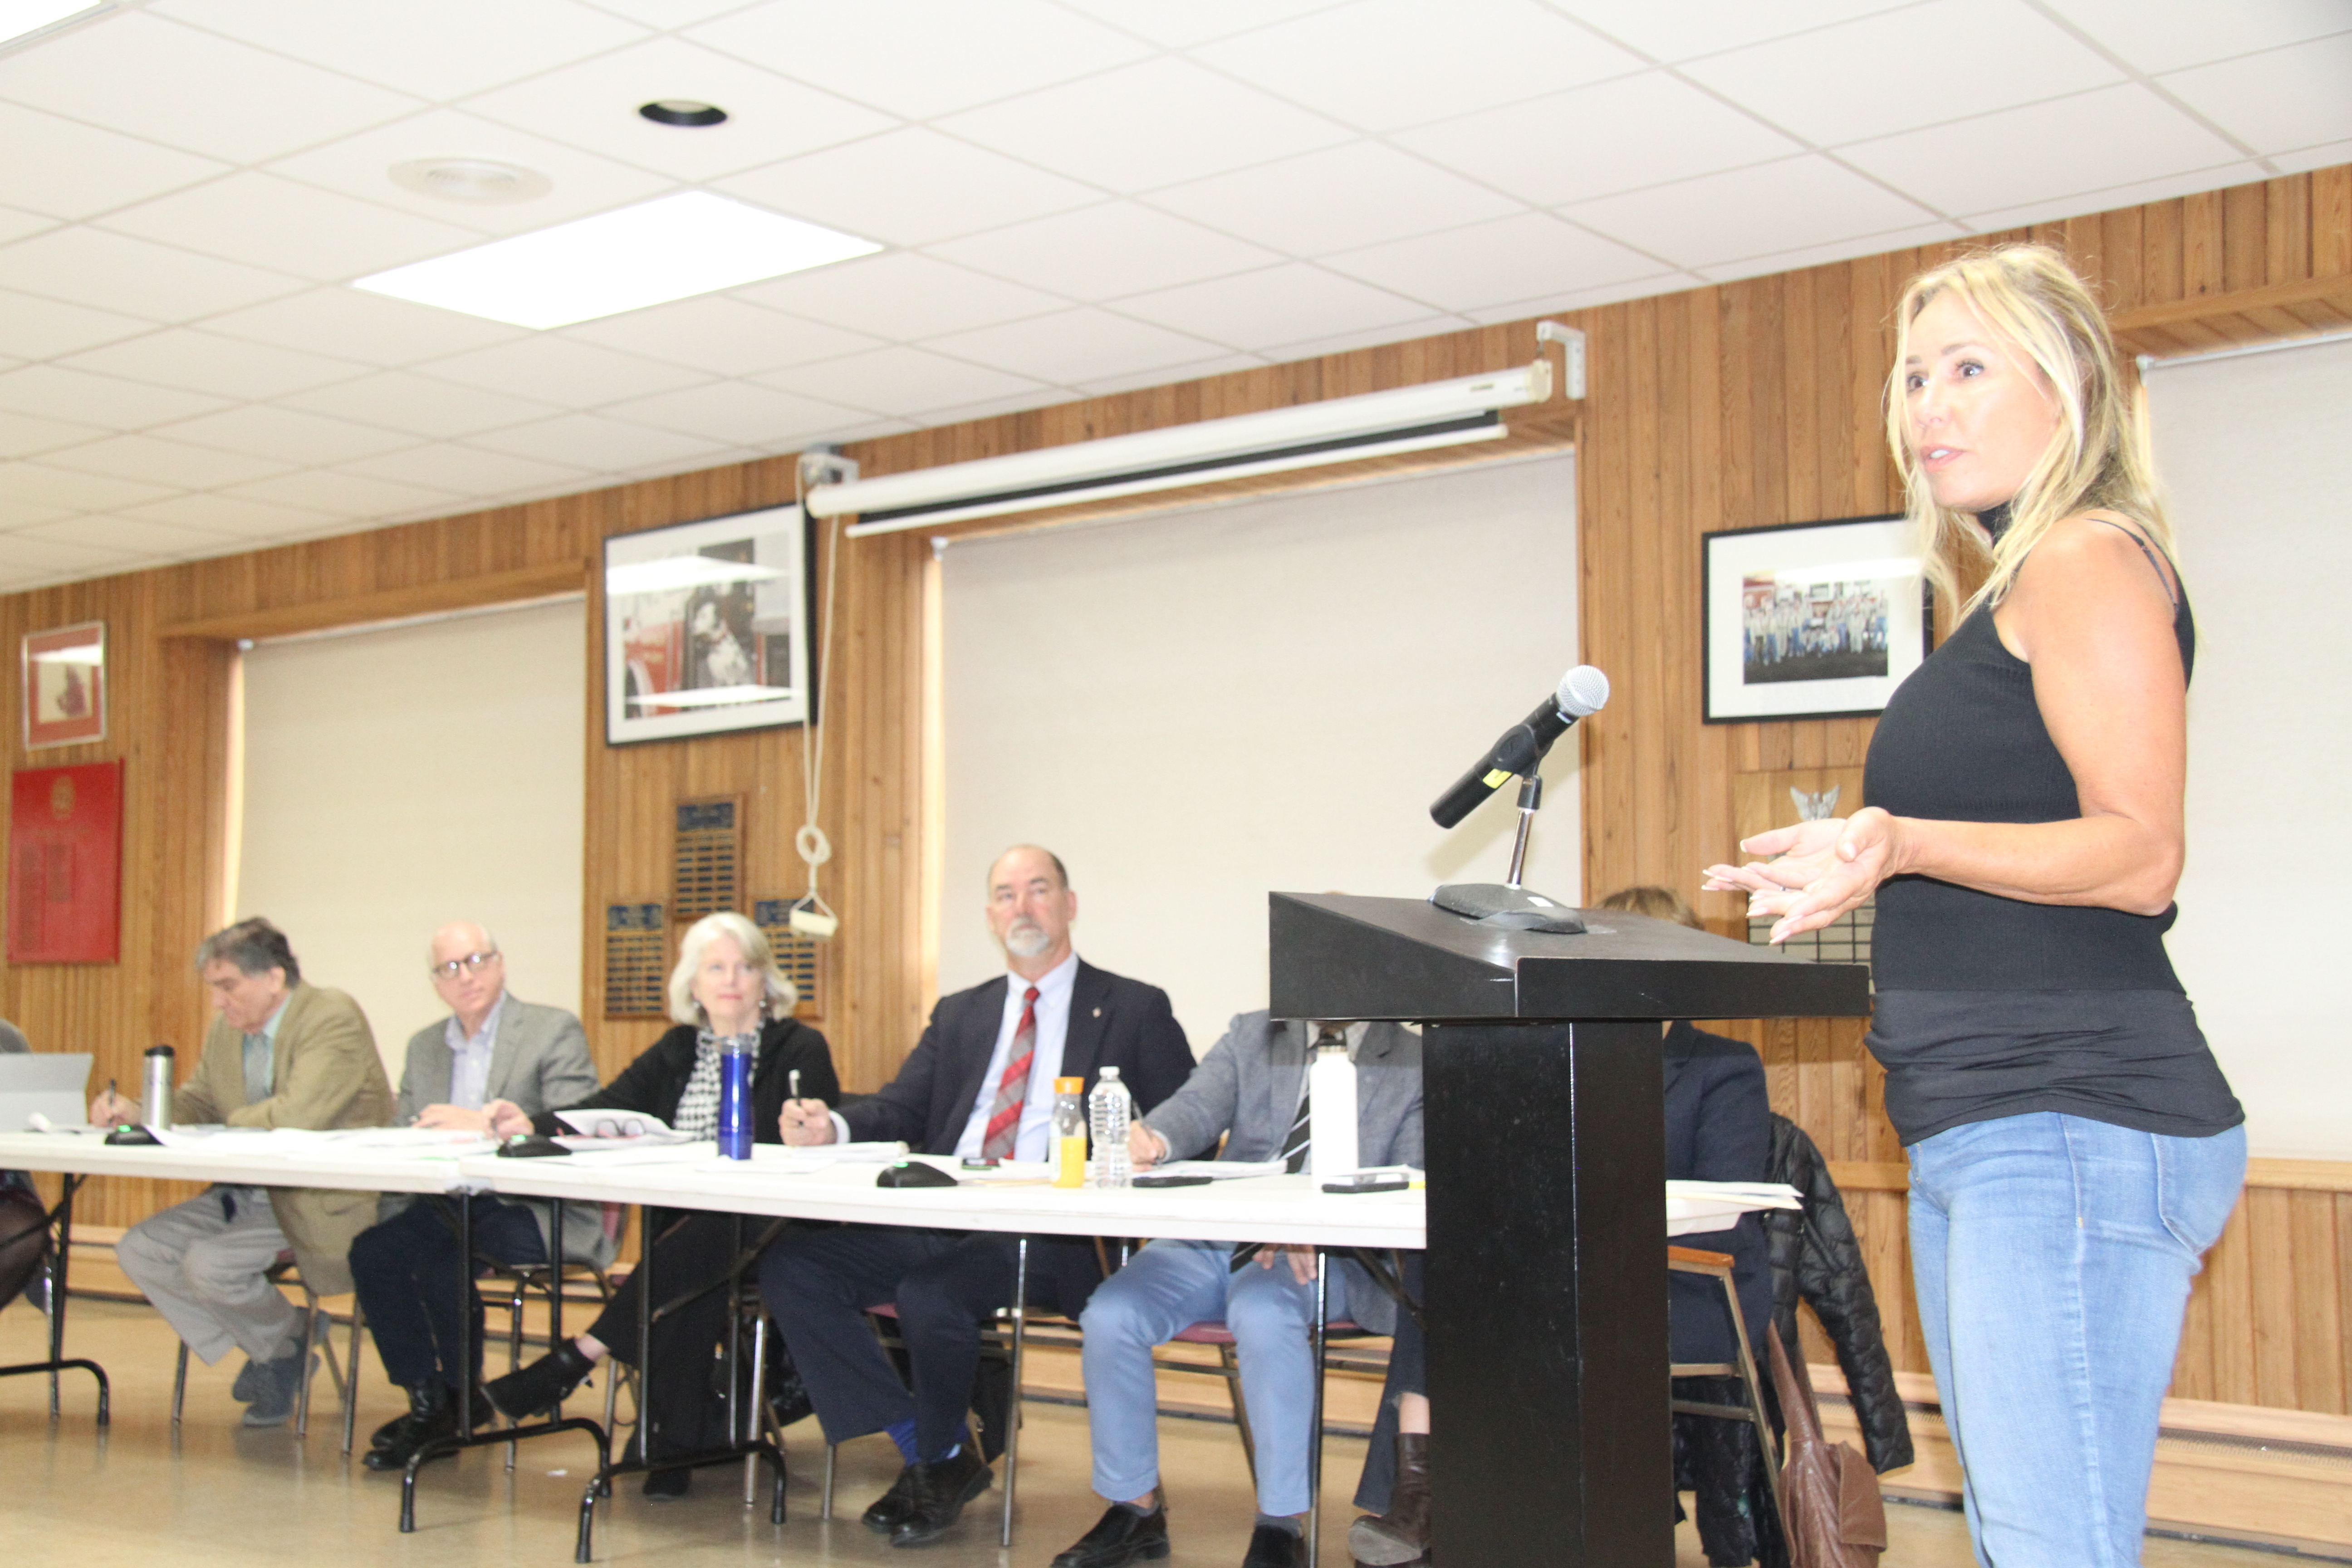 Musicians and business owners asked the Town Board to keep the restriction on music permits to the minimum necessary.